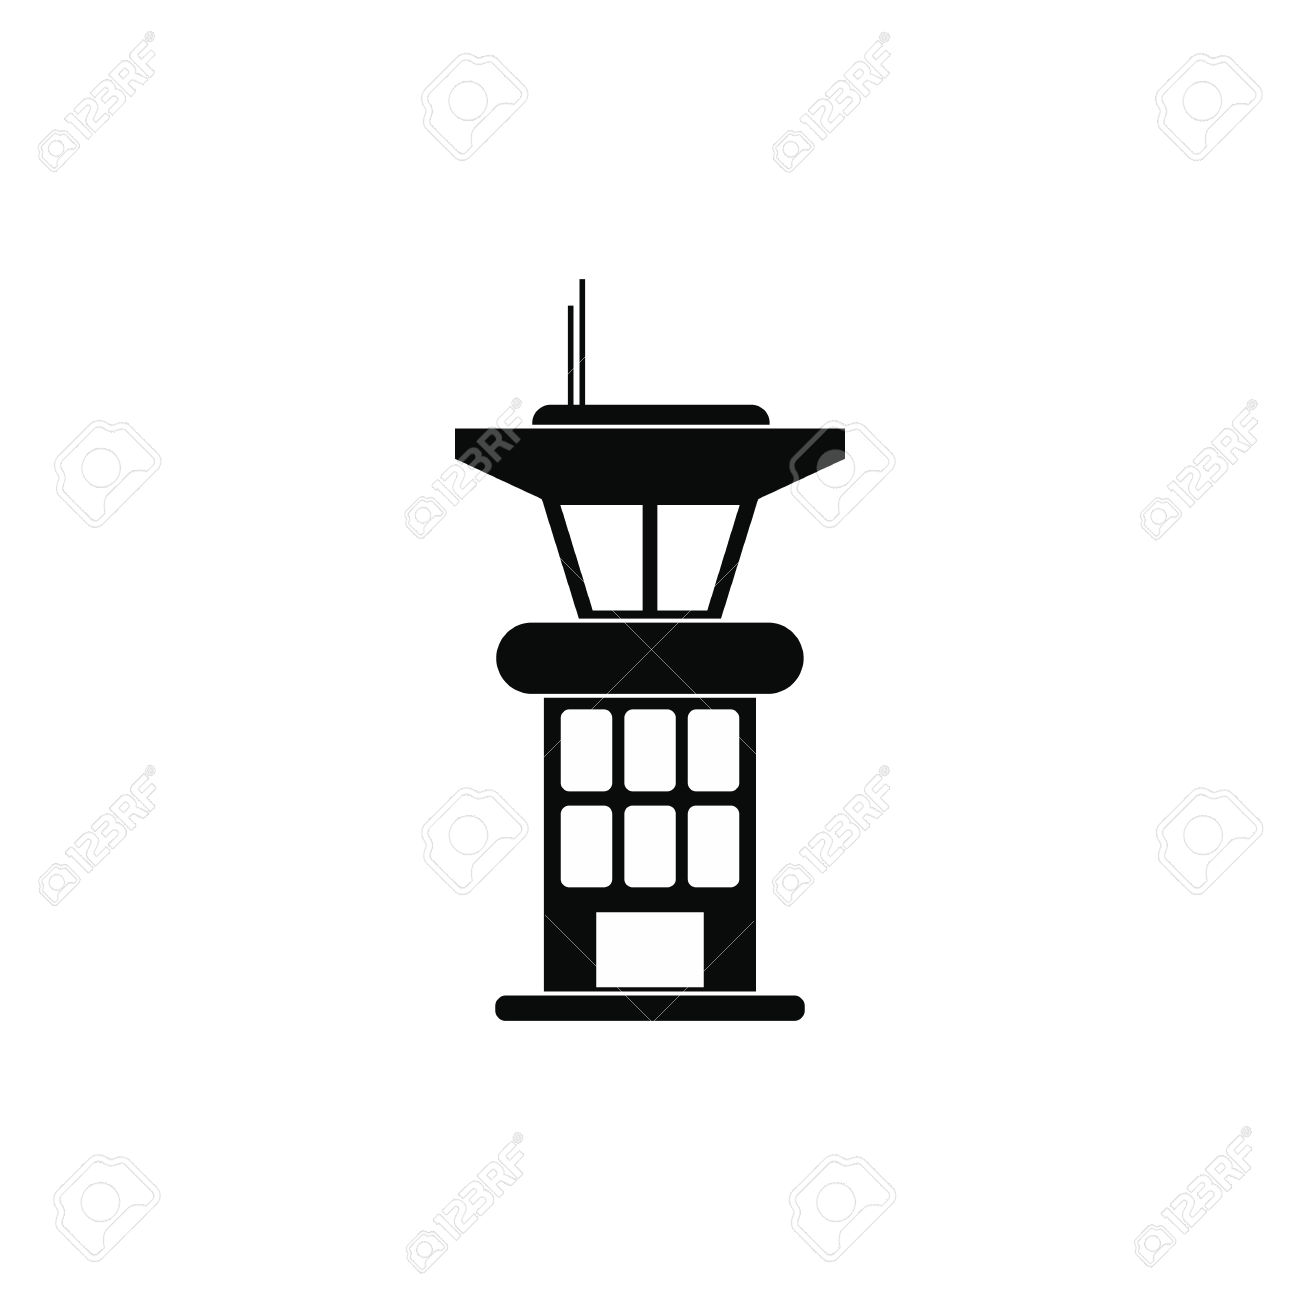 339 Observation Tower Stock Vector Illustration And Royalty Free.